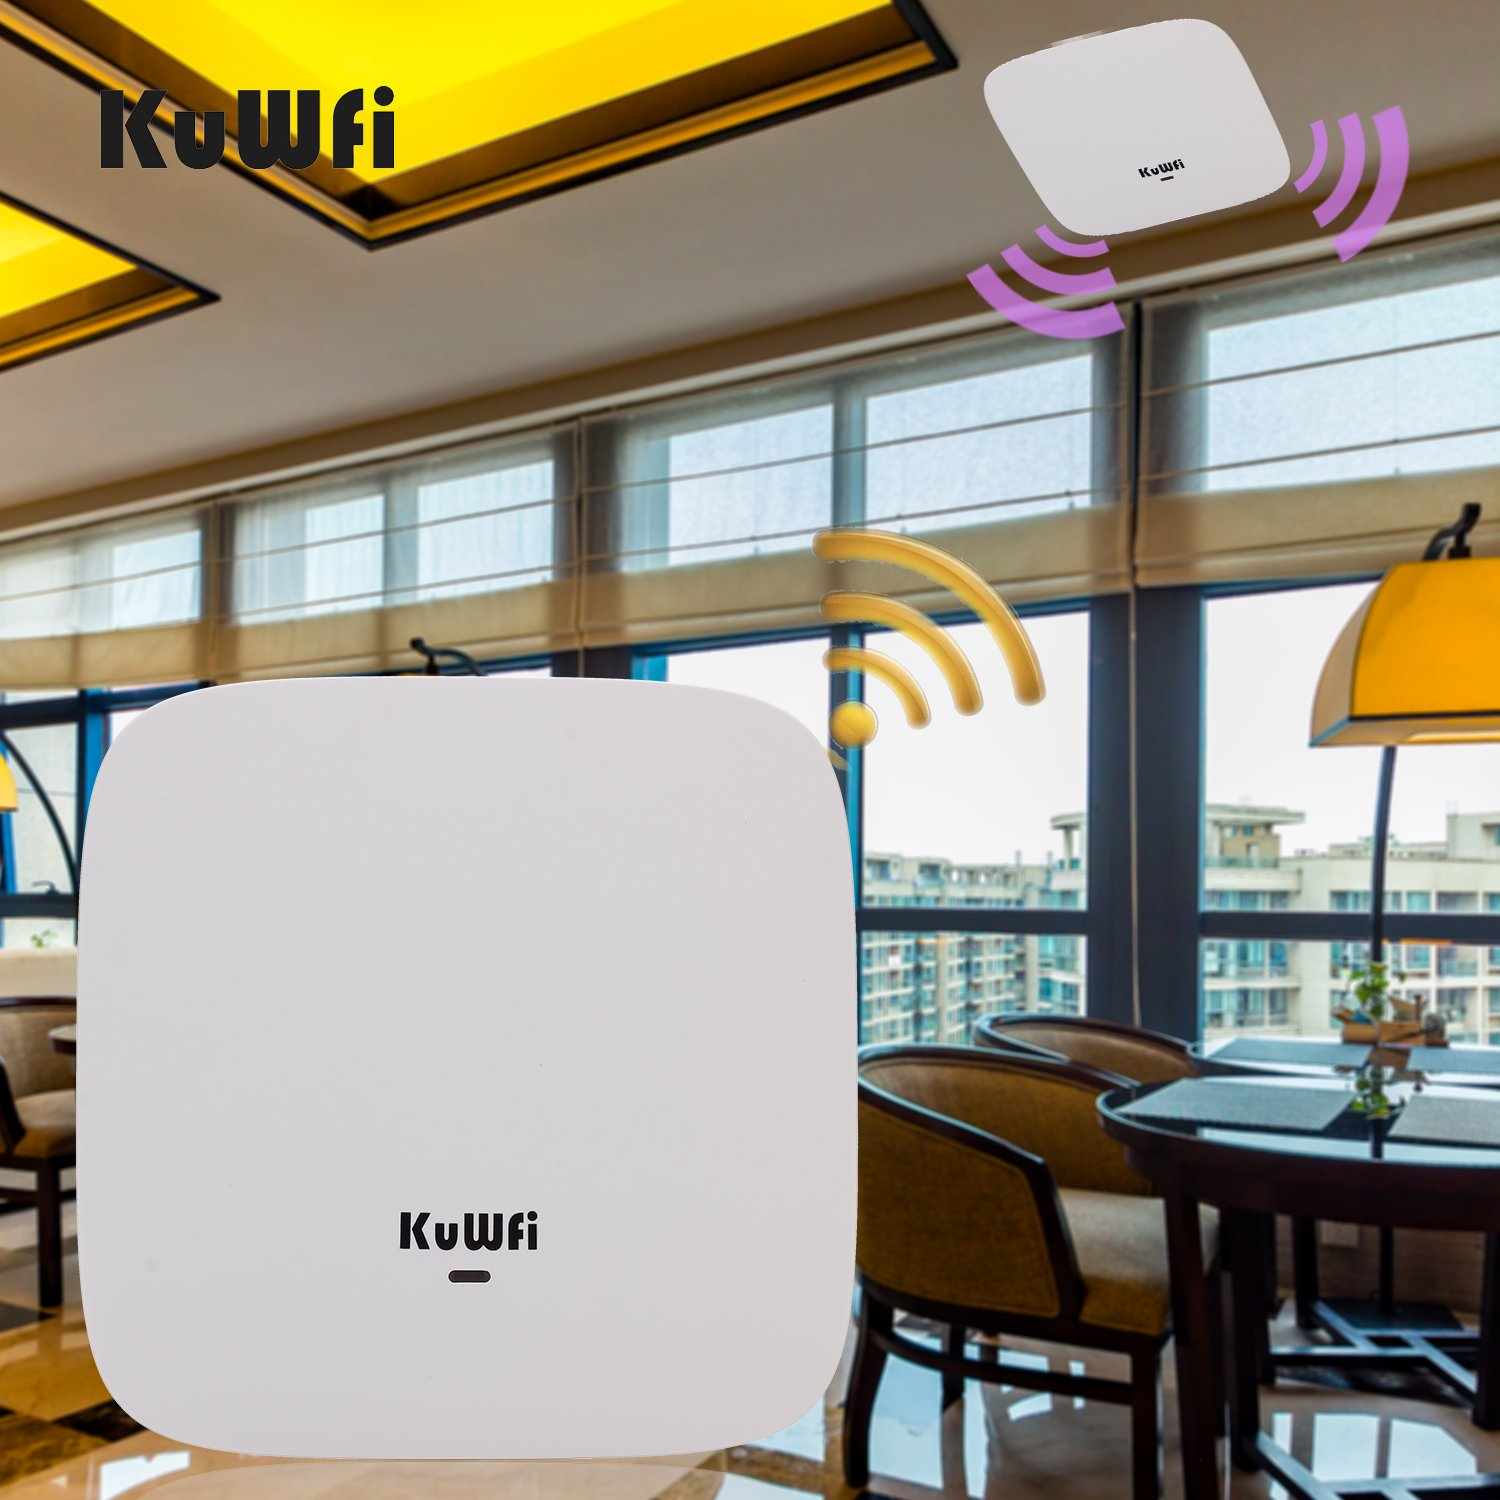 KuWFi Ceiling Mount Wireless Access Point, Dual Band Wireless Wi-Fi AP Router with 24V POE Long Range Wall Mount Ceiling Router Supply a Stable Wireless Coverage